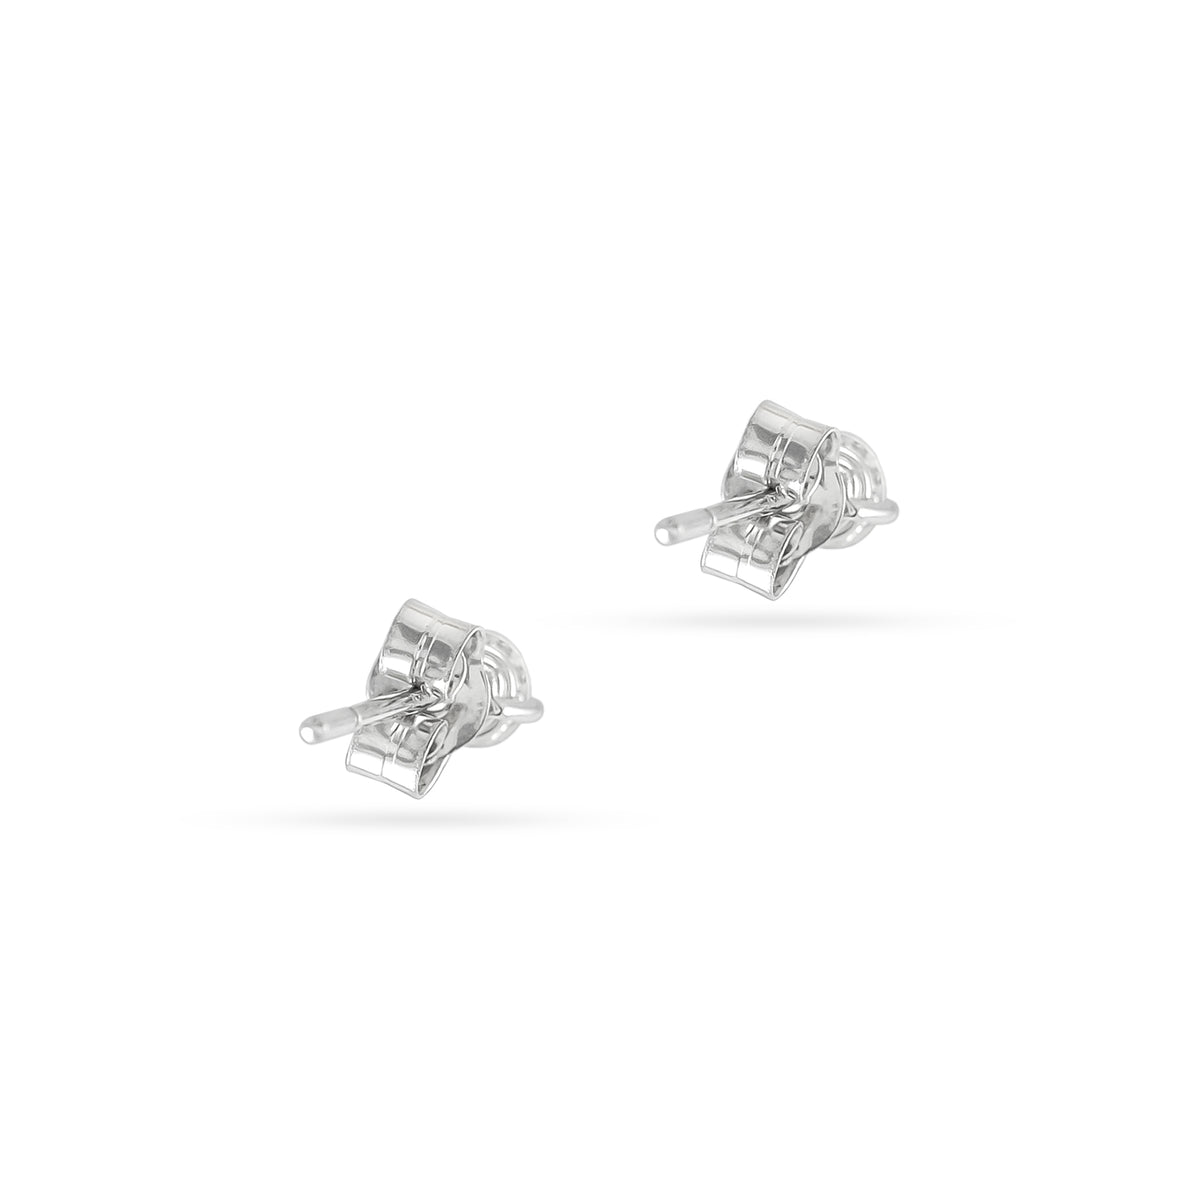 0.17ct 18ct White Gold Diamond Stud Earrings